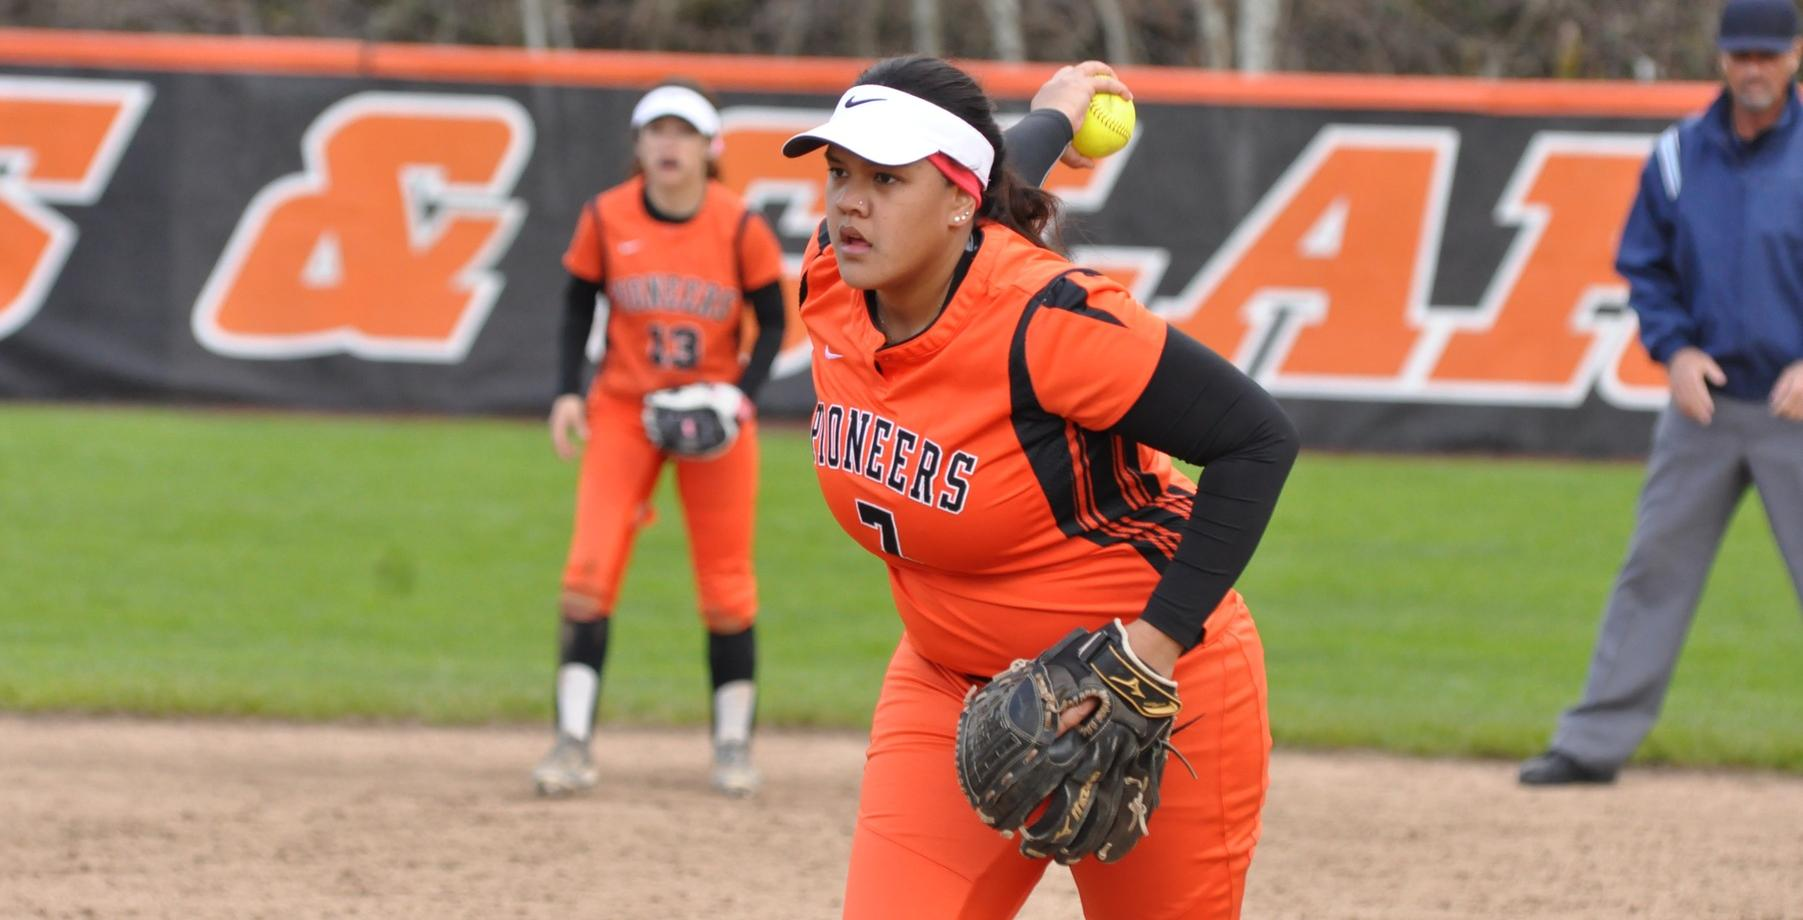 Pios sweep Pacific in doubleheader